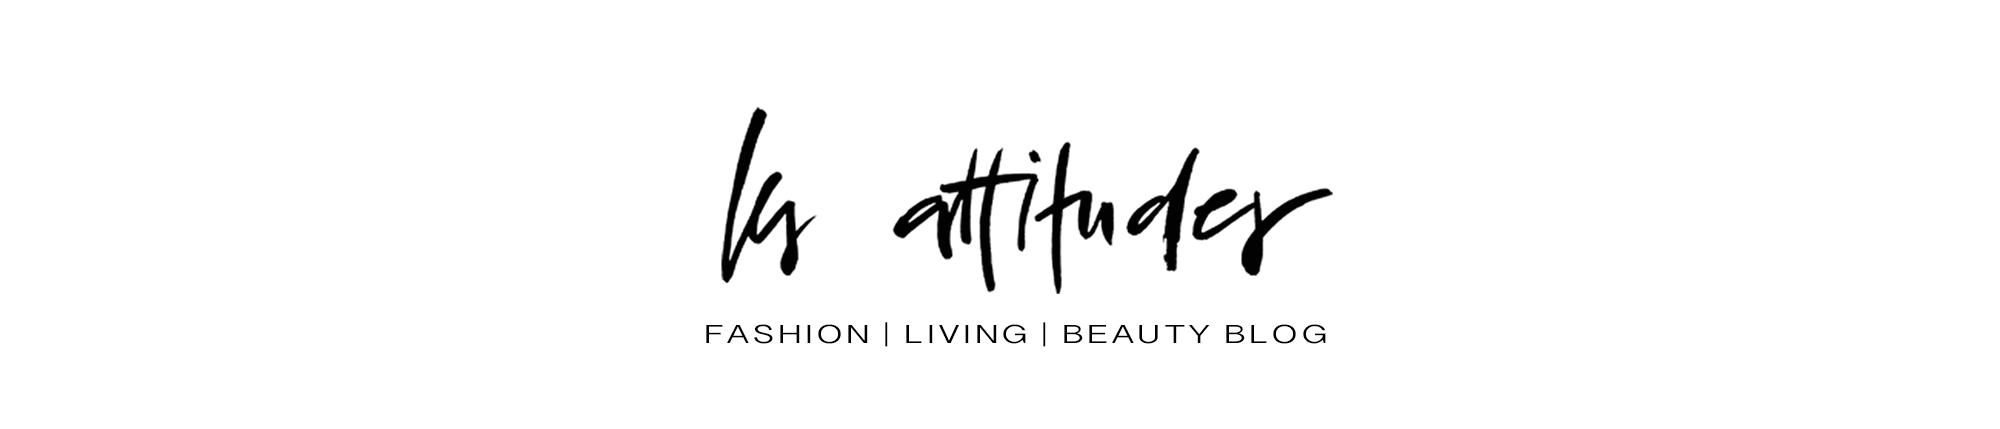 Les Attitudes – Fashion, Lifestyle und Beauty Blog